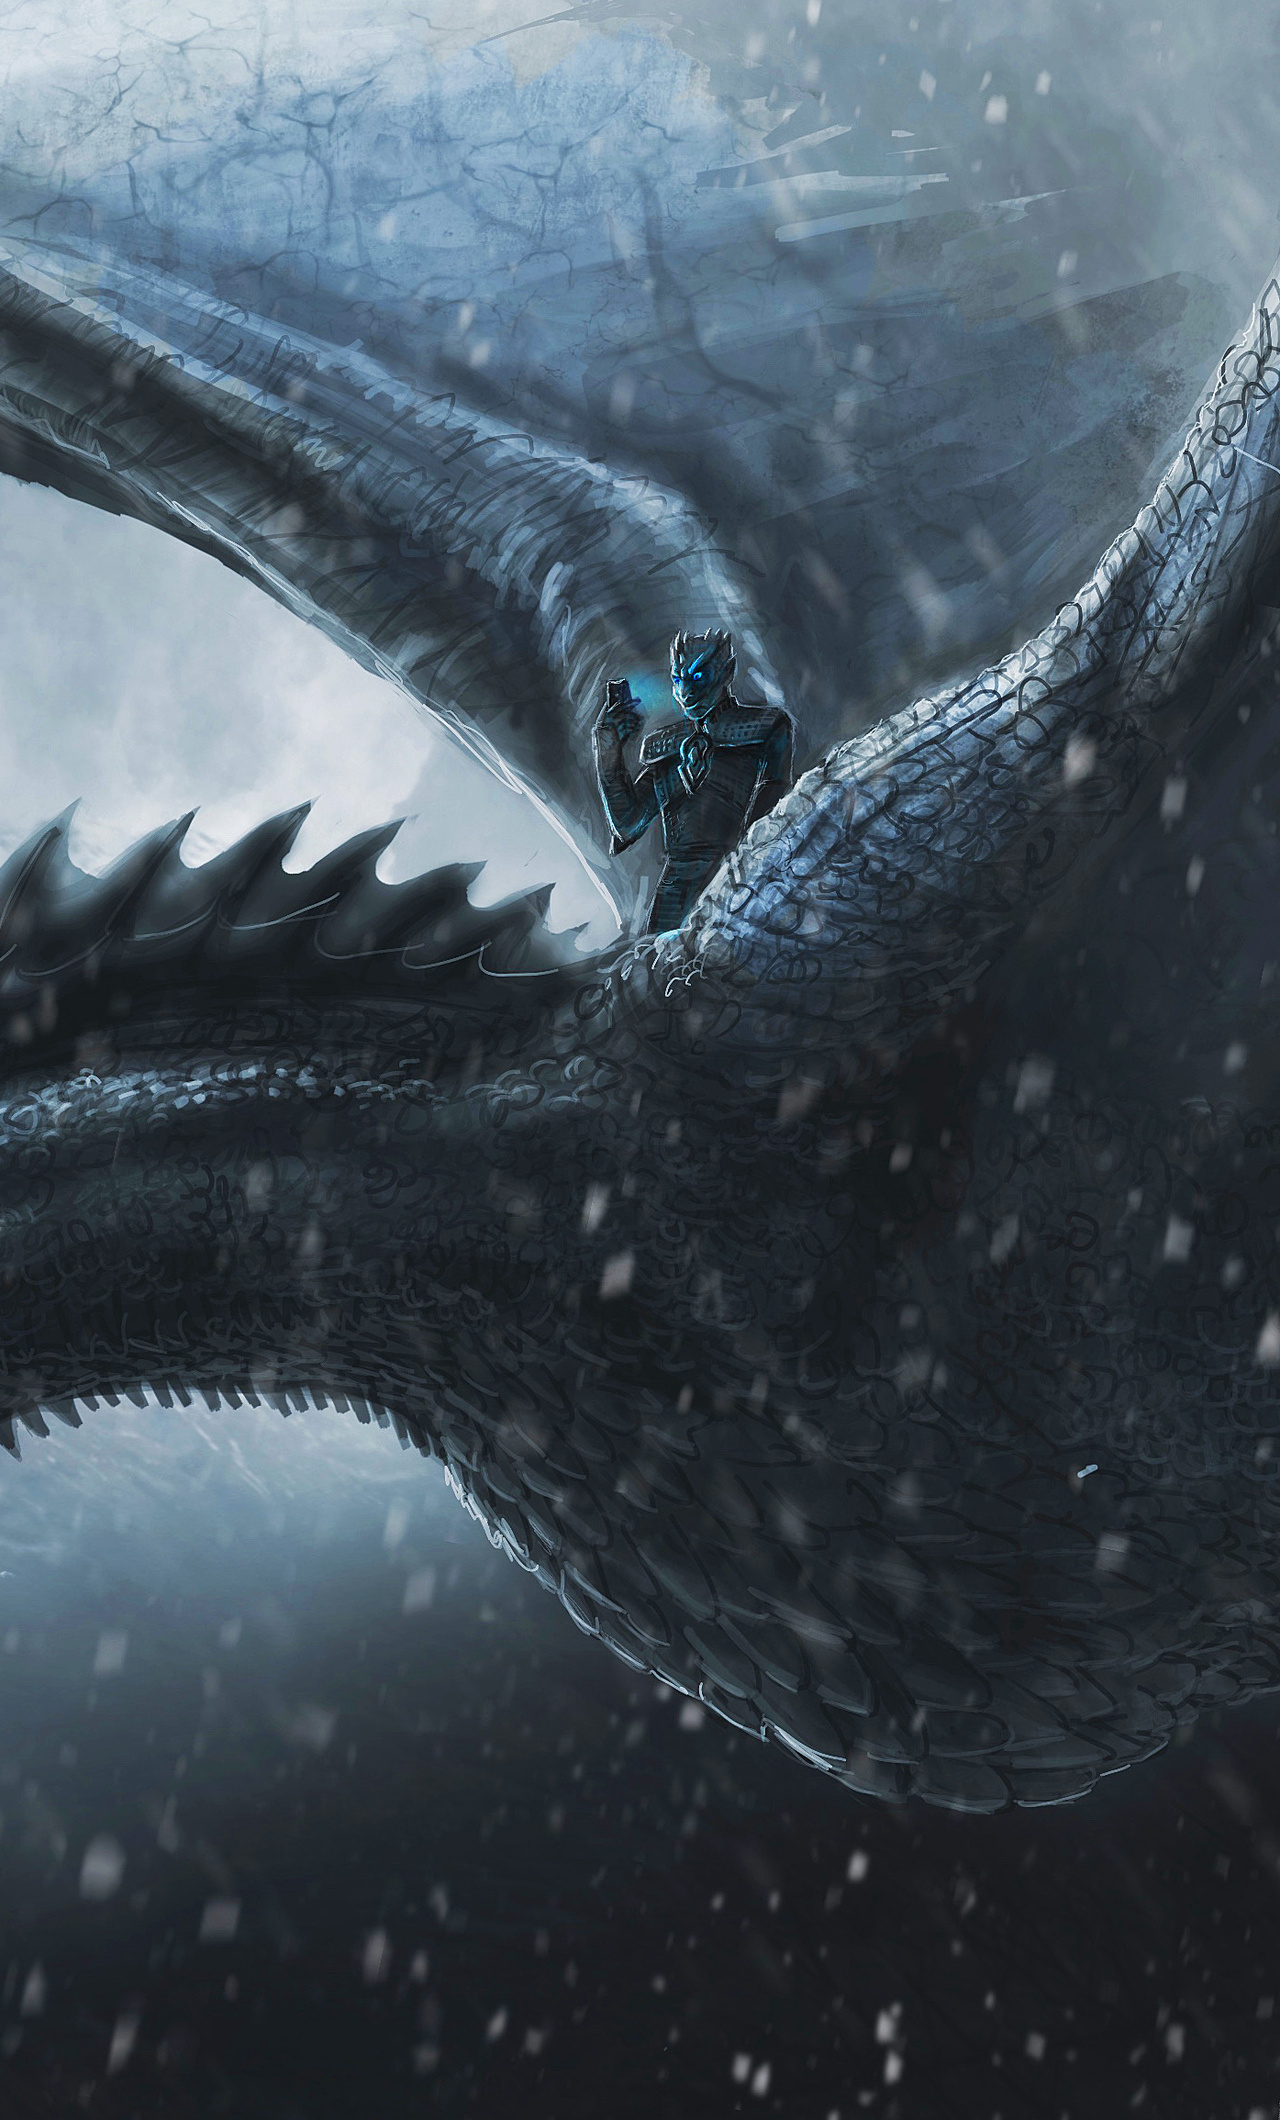 night-king-dragon-4k-f4.jpg